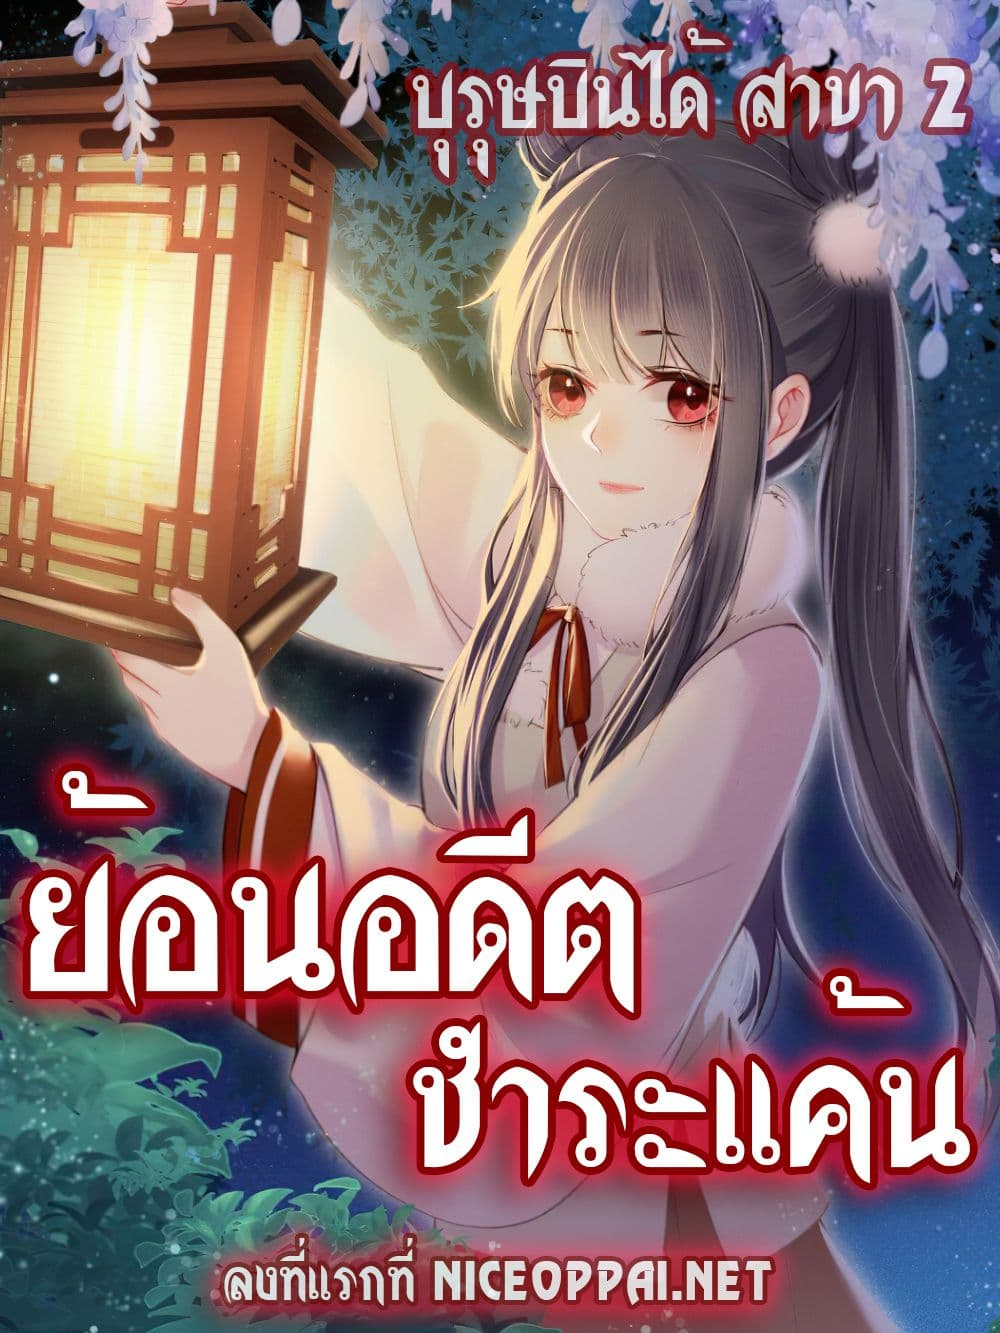 The Rebirth Daughter is not Good-ตอนที่ 10